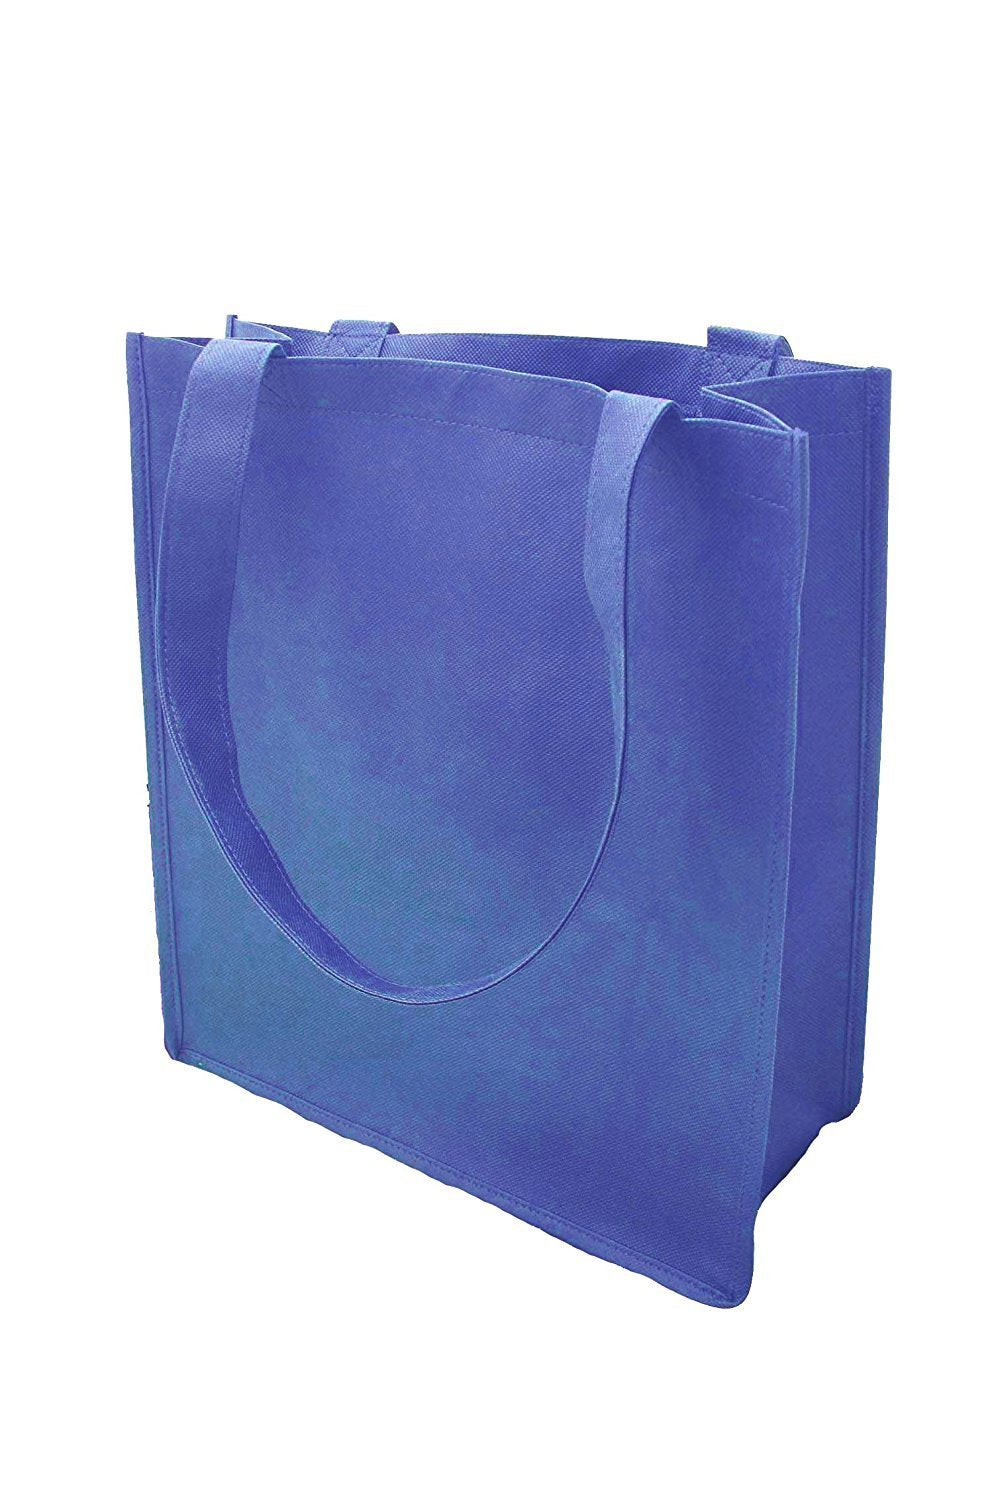 "ImpecGear 15"" Tote W/ 6 Gusset Grocery Bag Recycled Reusable Shopping Tote Shoulder Bag Luggage"